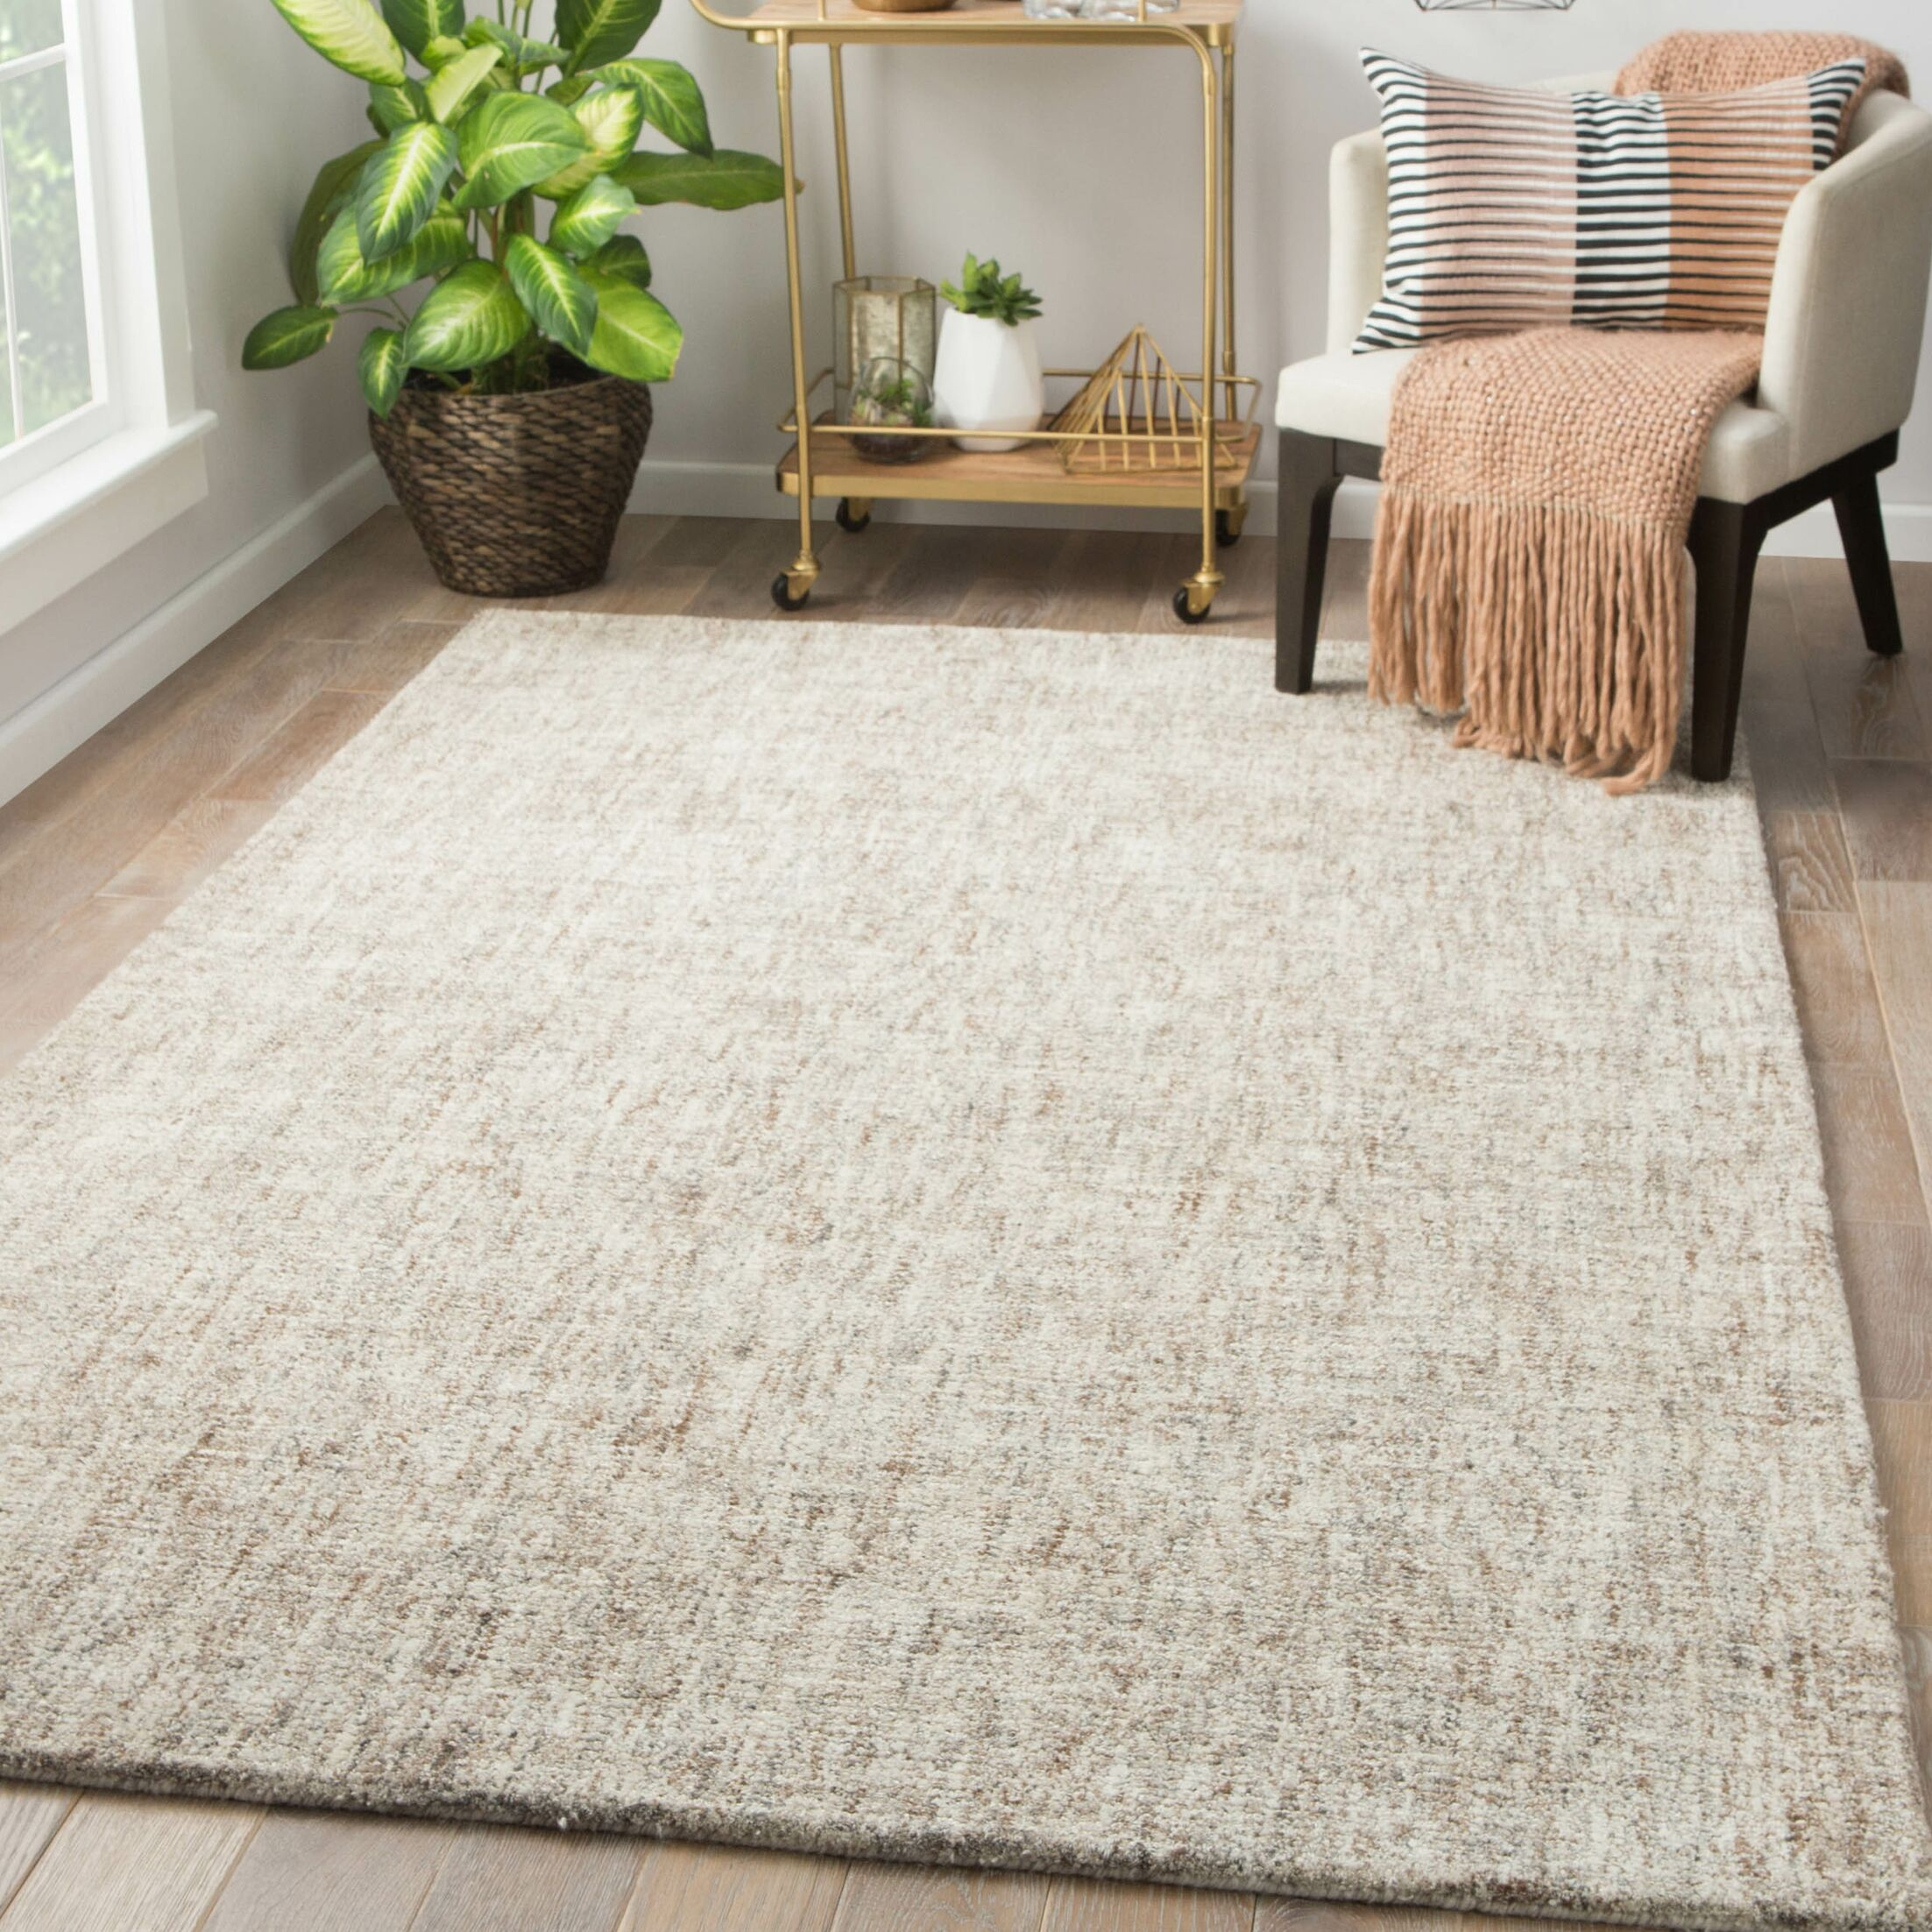 Widger Hand-Tufted Angora/Monk's Robe Area Rug Rug Size: Rectangle 5' x 8'